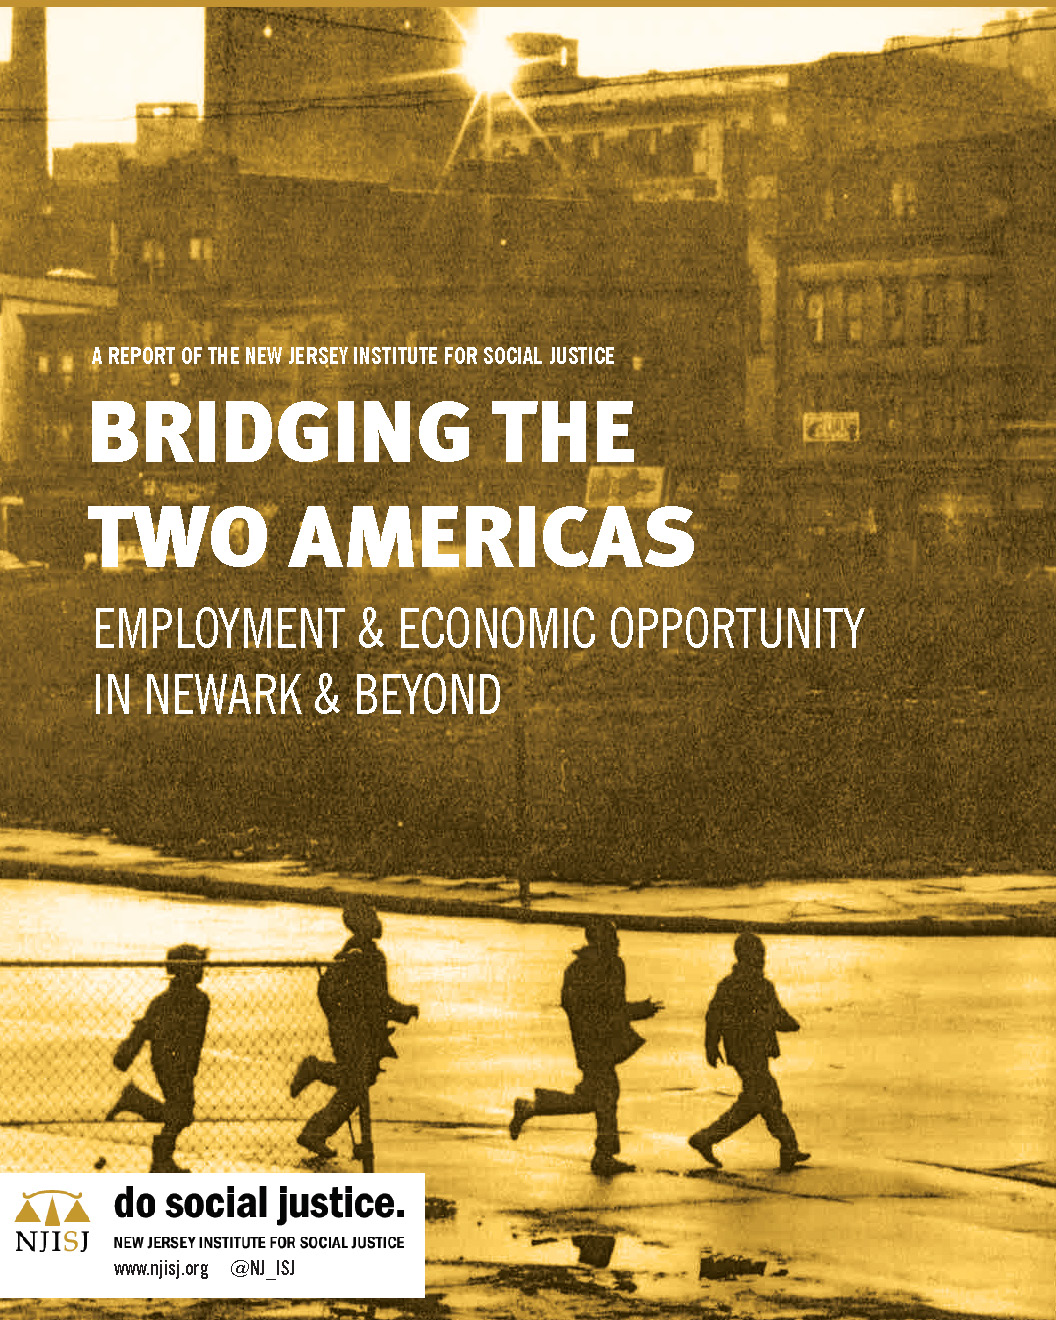 Bridging_the_Two_Americas_Cover.jpg